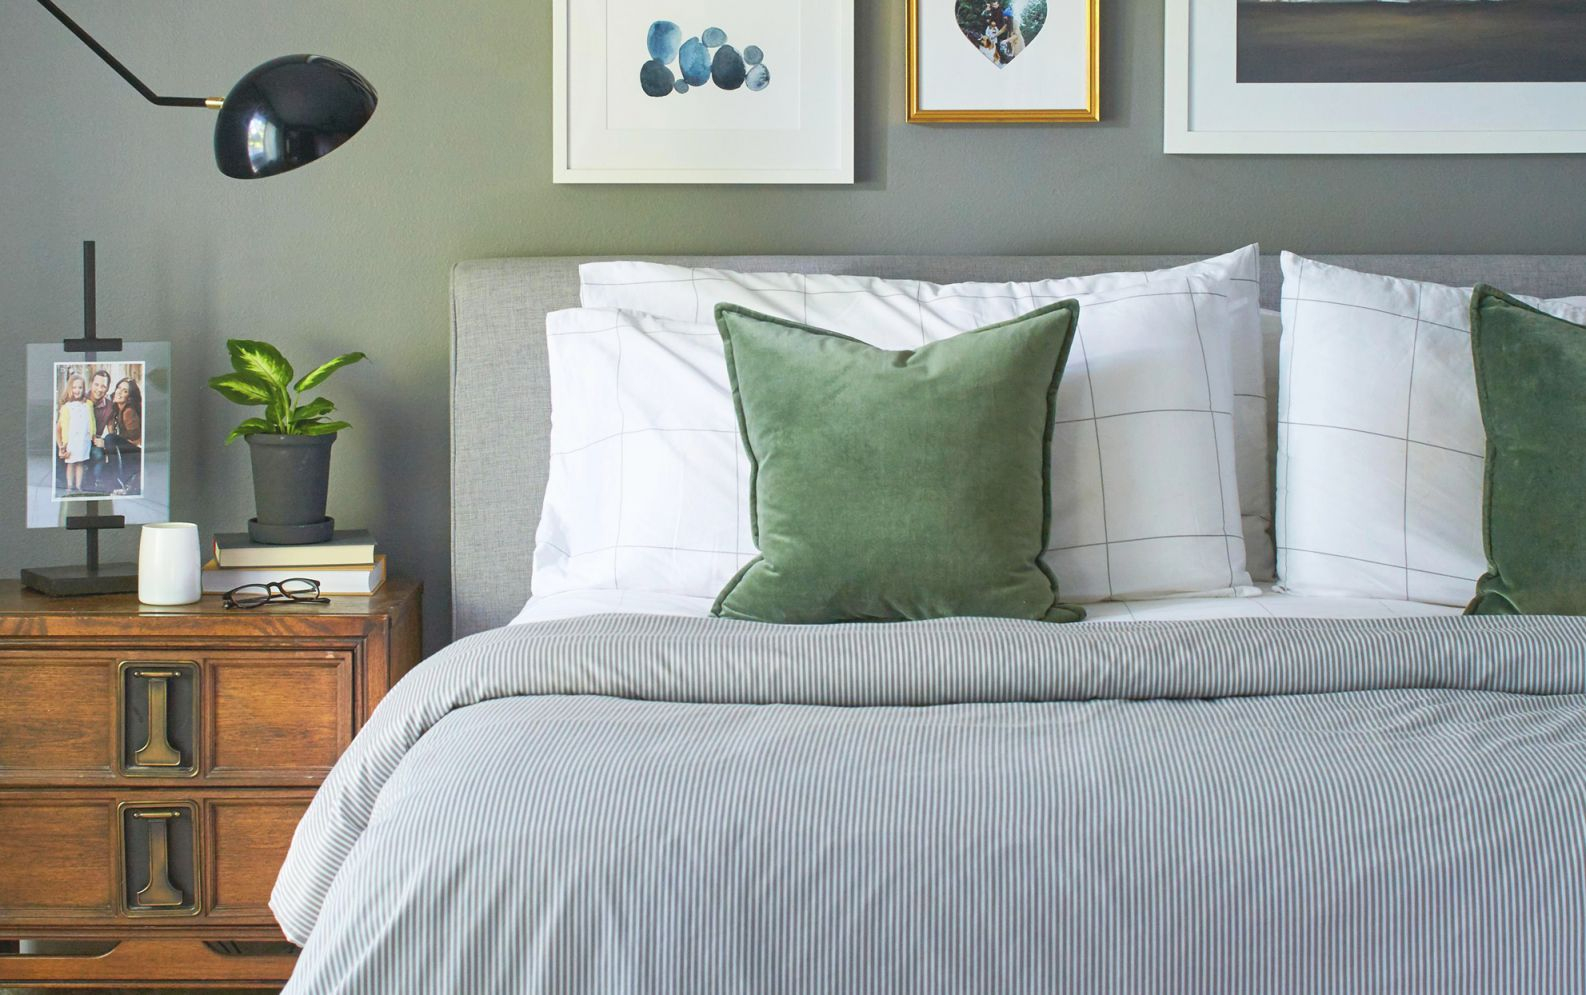 Bedroom Decorating And Design Ideas | Better Homes & Gardens with Decorative Ideas For Bedroom